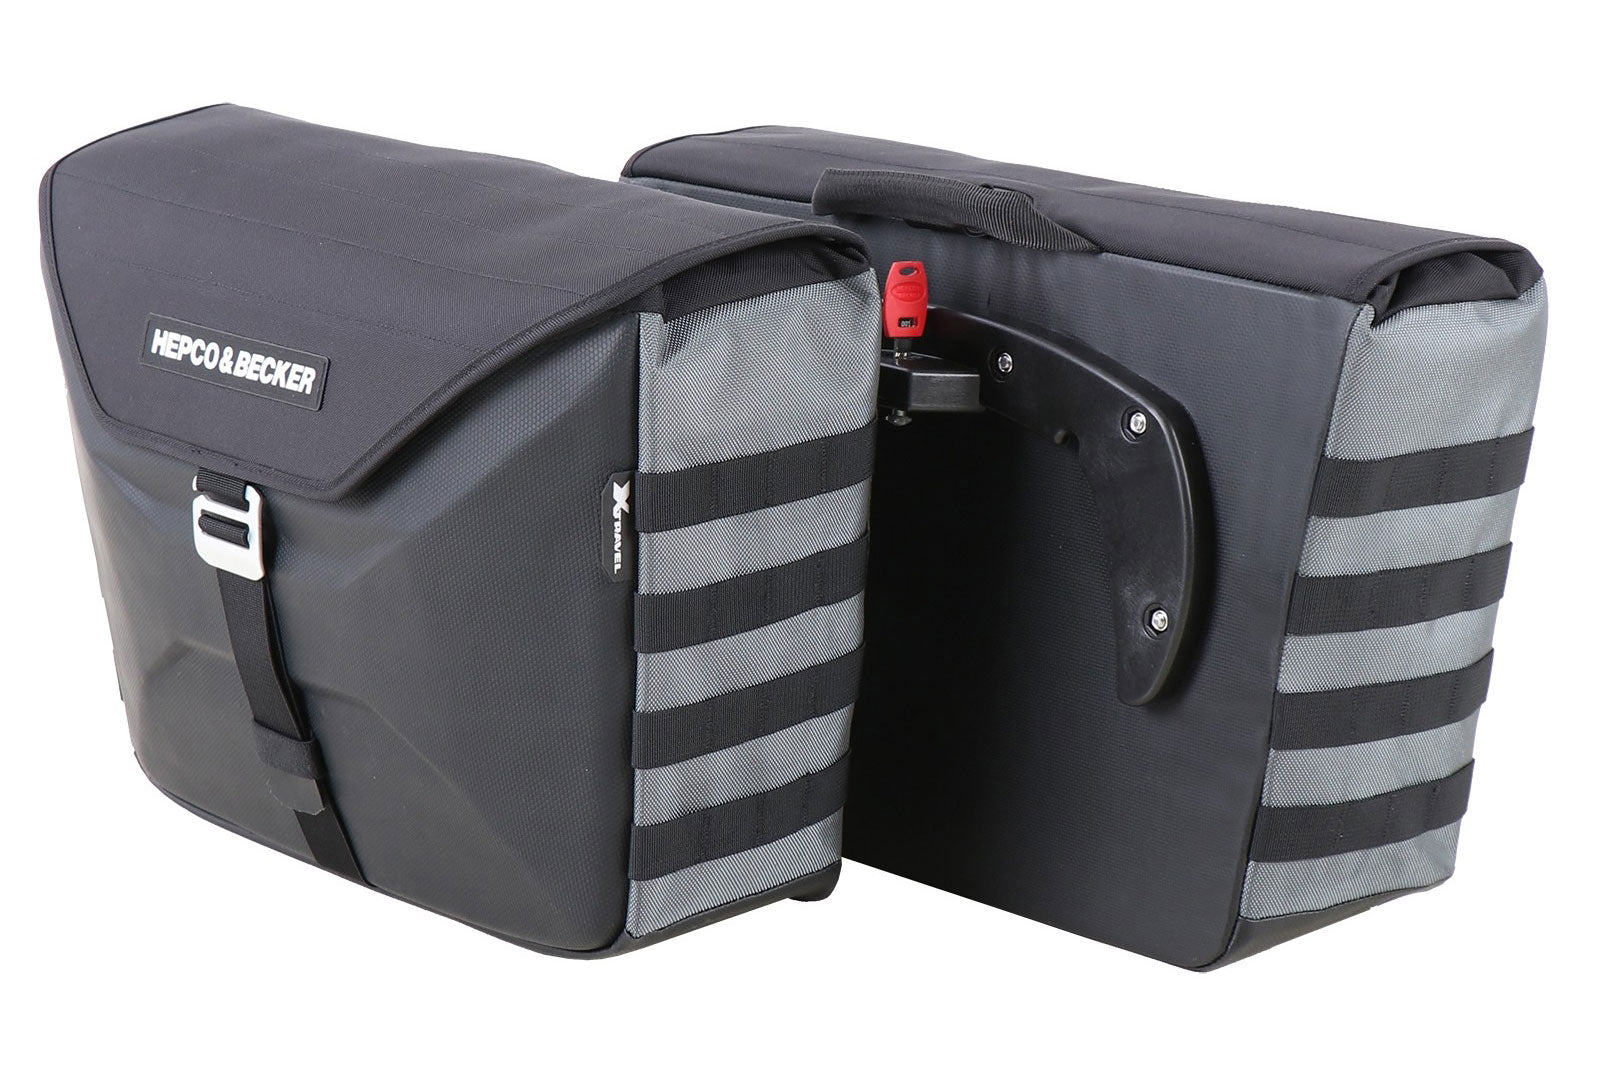 XTravel Soft Luggage by Hepco Becker